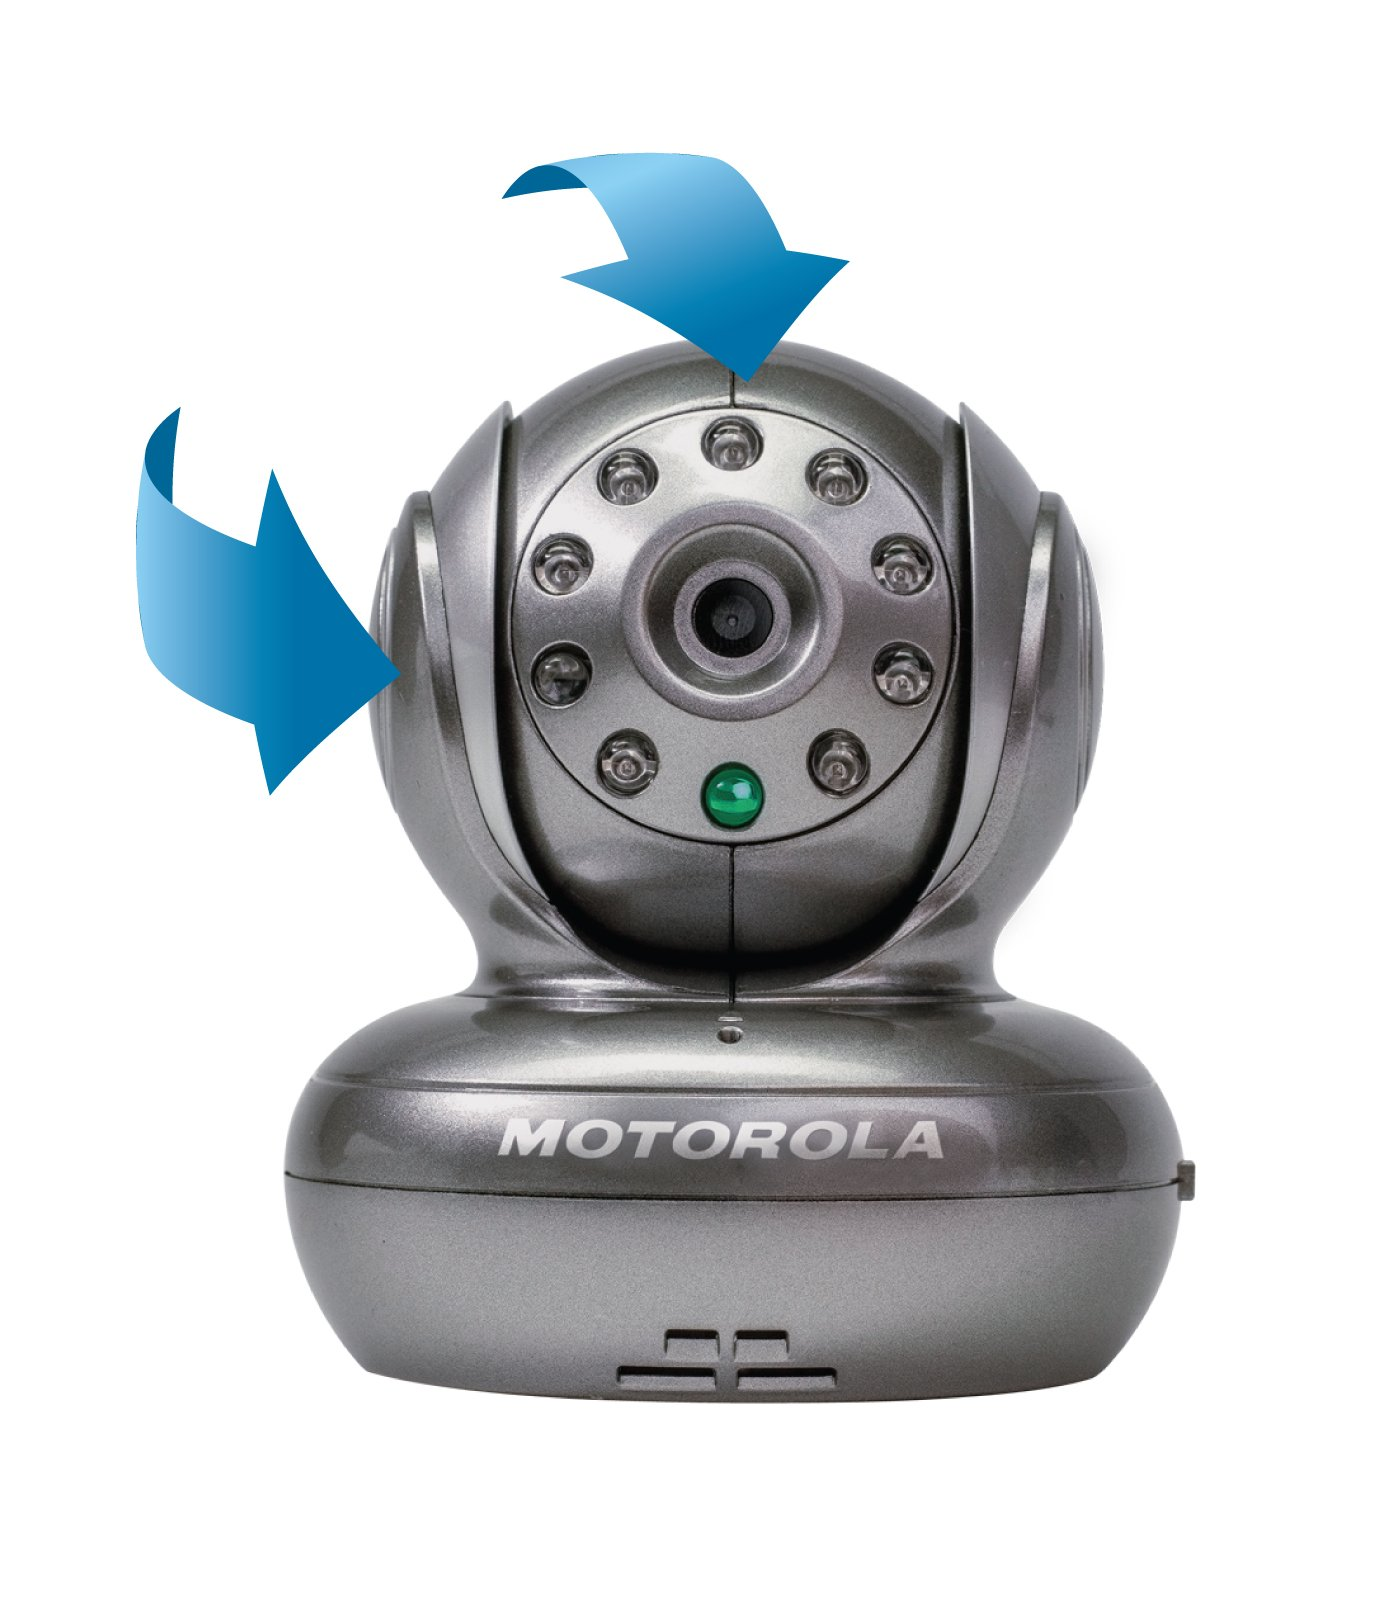 Motorola Blink1 Wi-Fi Video Camera for Remote Viewing with iPhone and Android Smartphones and Tablets, Silver by Motorola (Image #3)